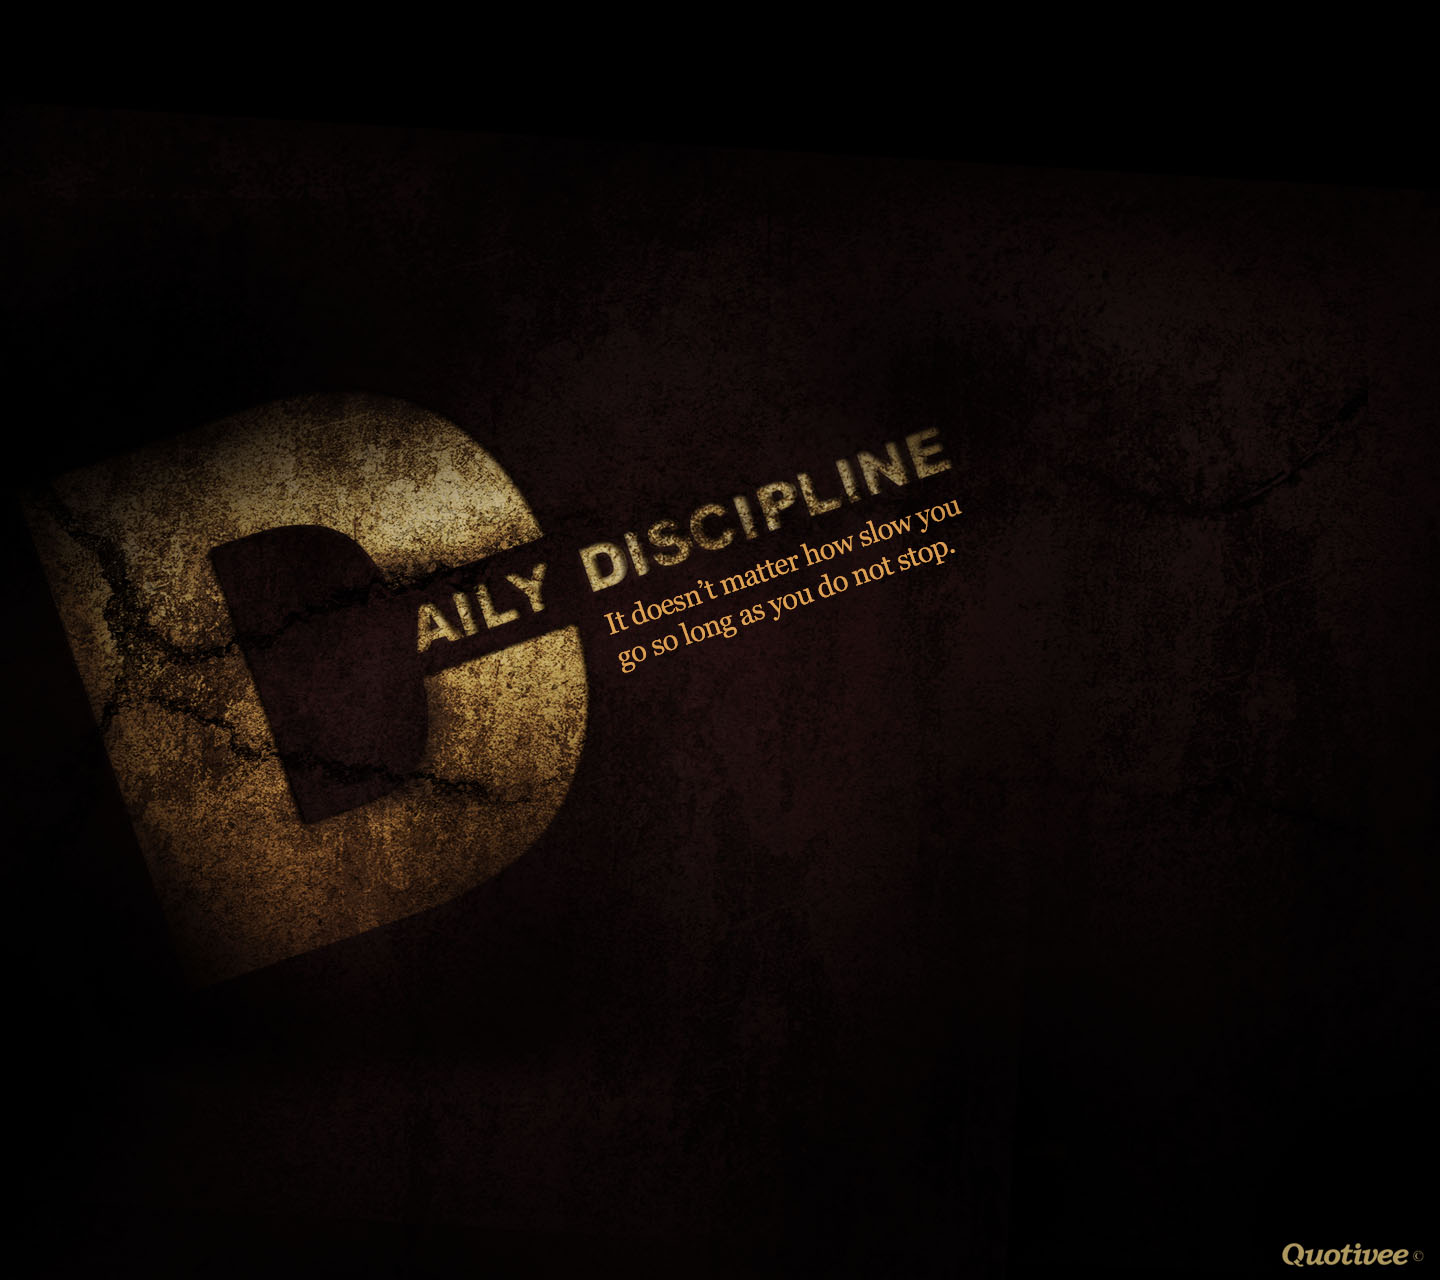 Don Draper Quote Wallpapers Daily Discipline Inspirational Quotes Quotivee